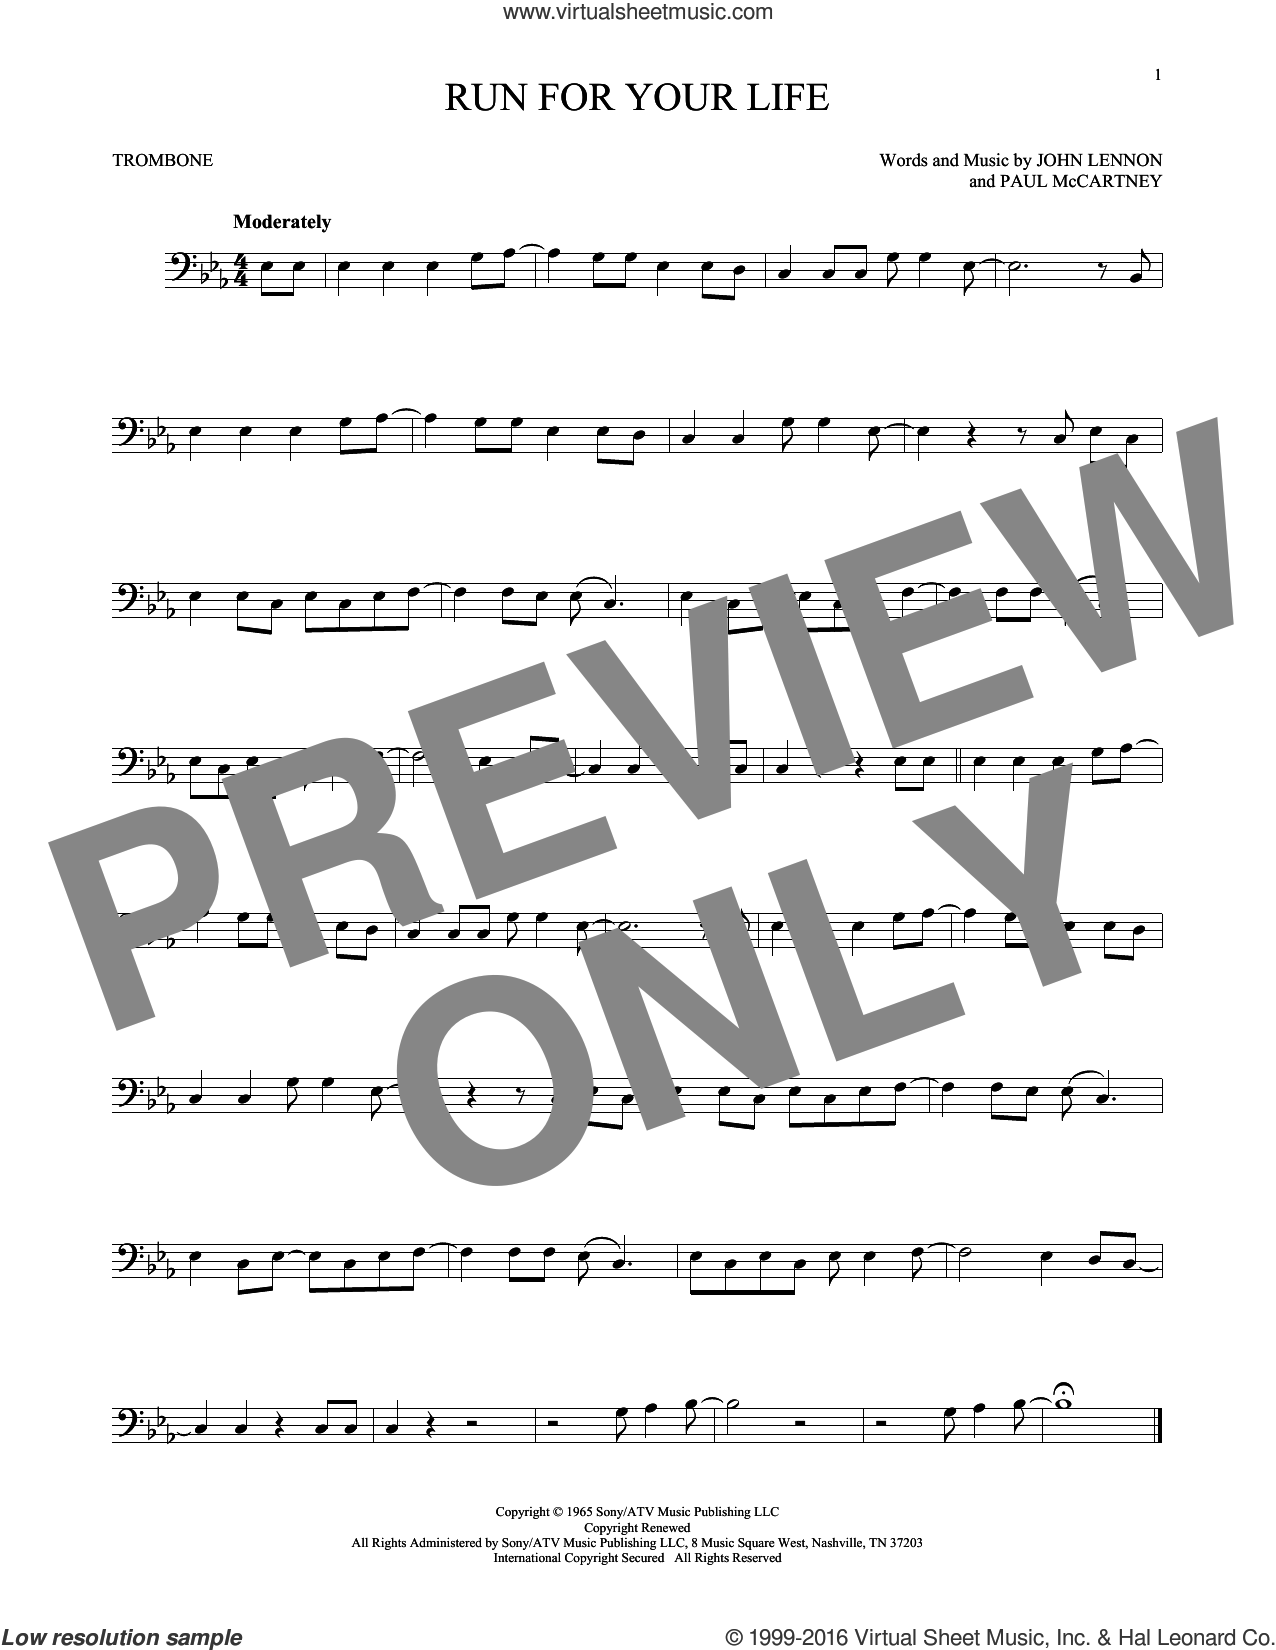 Run For Your Life sheet music for trombone solo by The Beatles, John Lennon and Paul McCartney, intermediate. Score Image Preview.